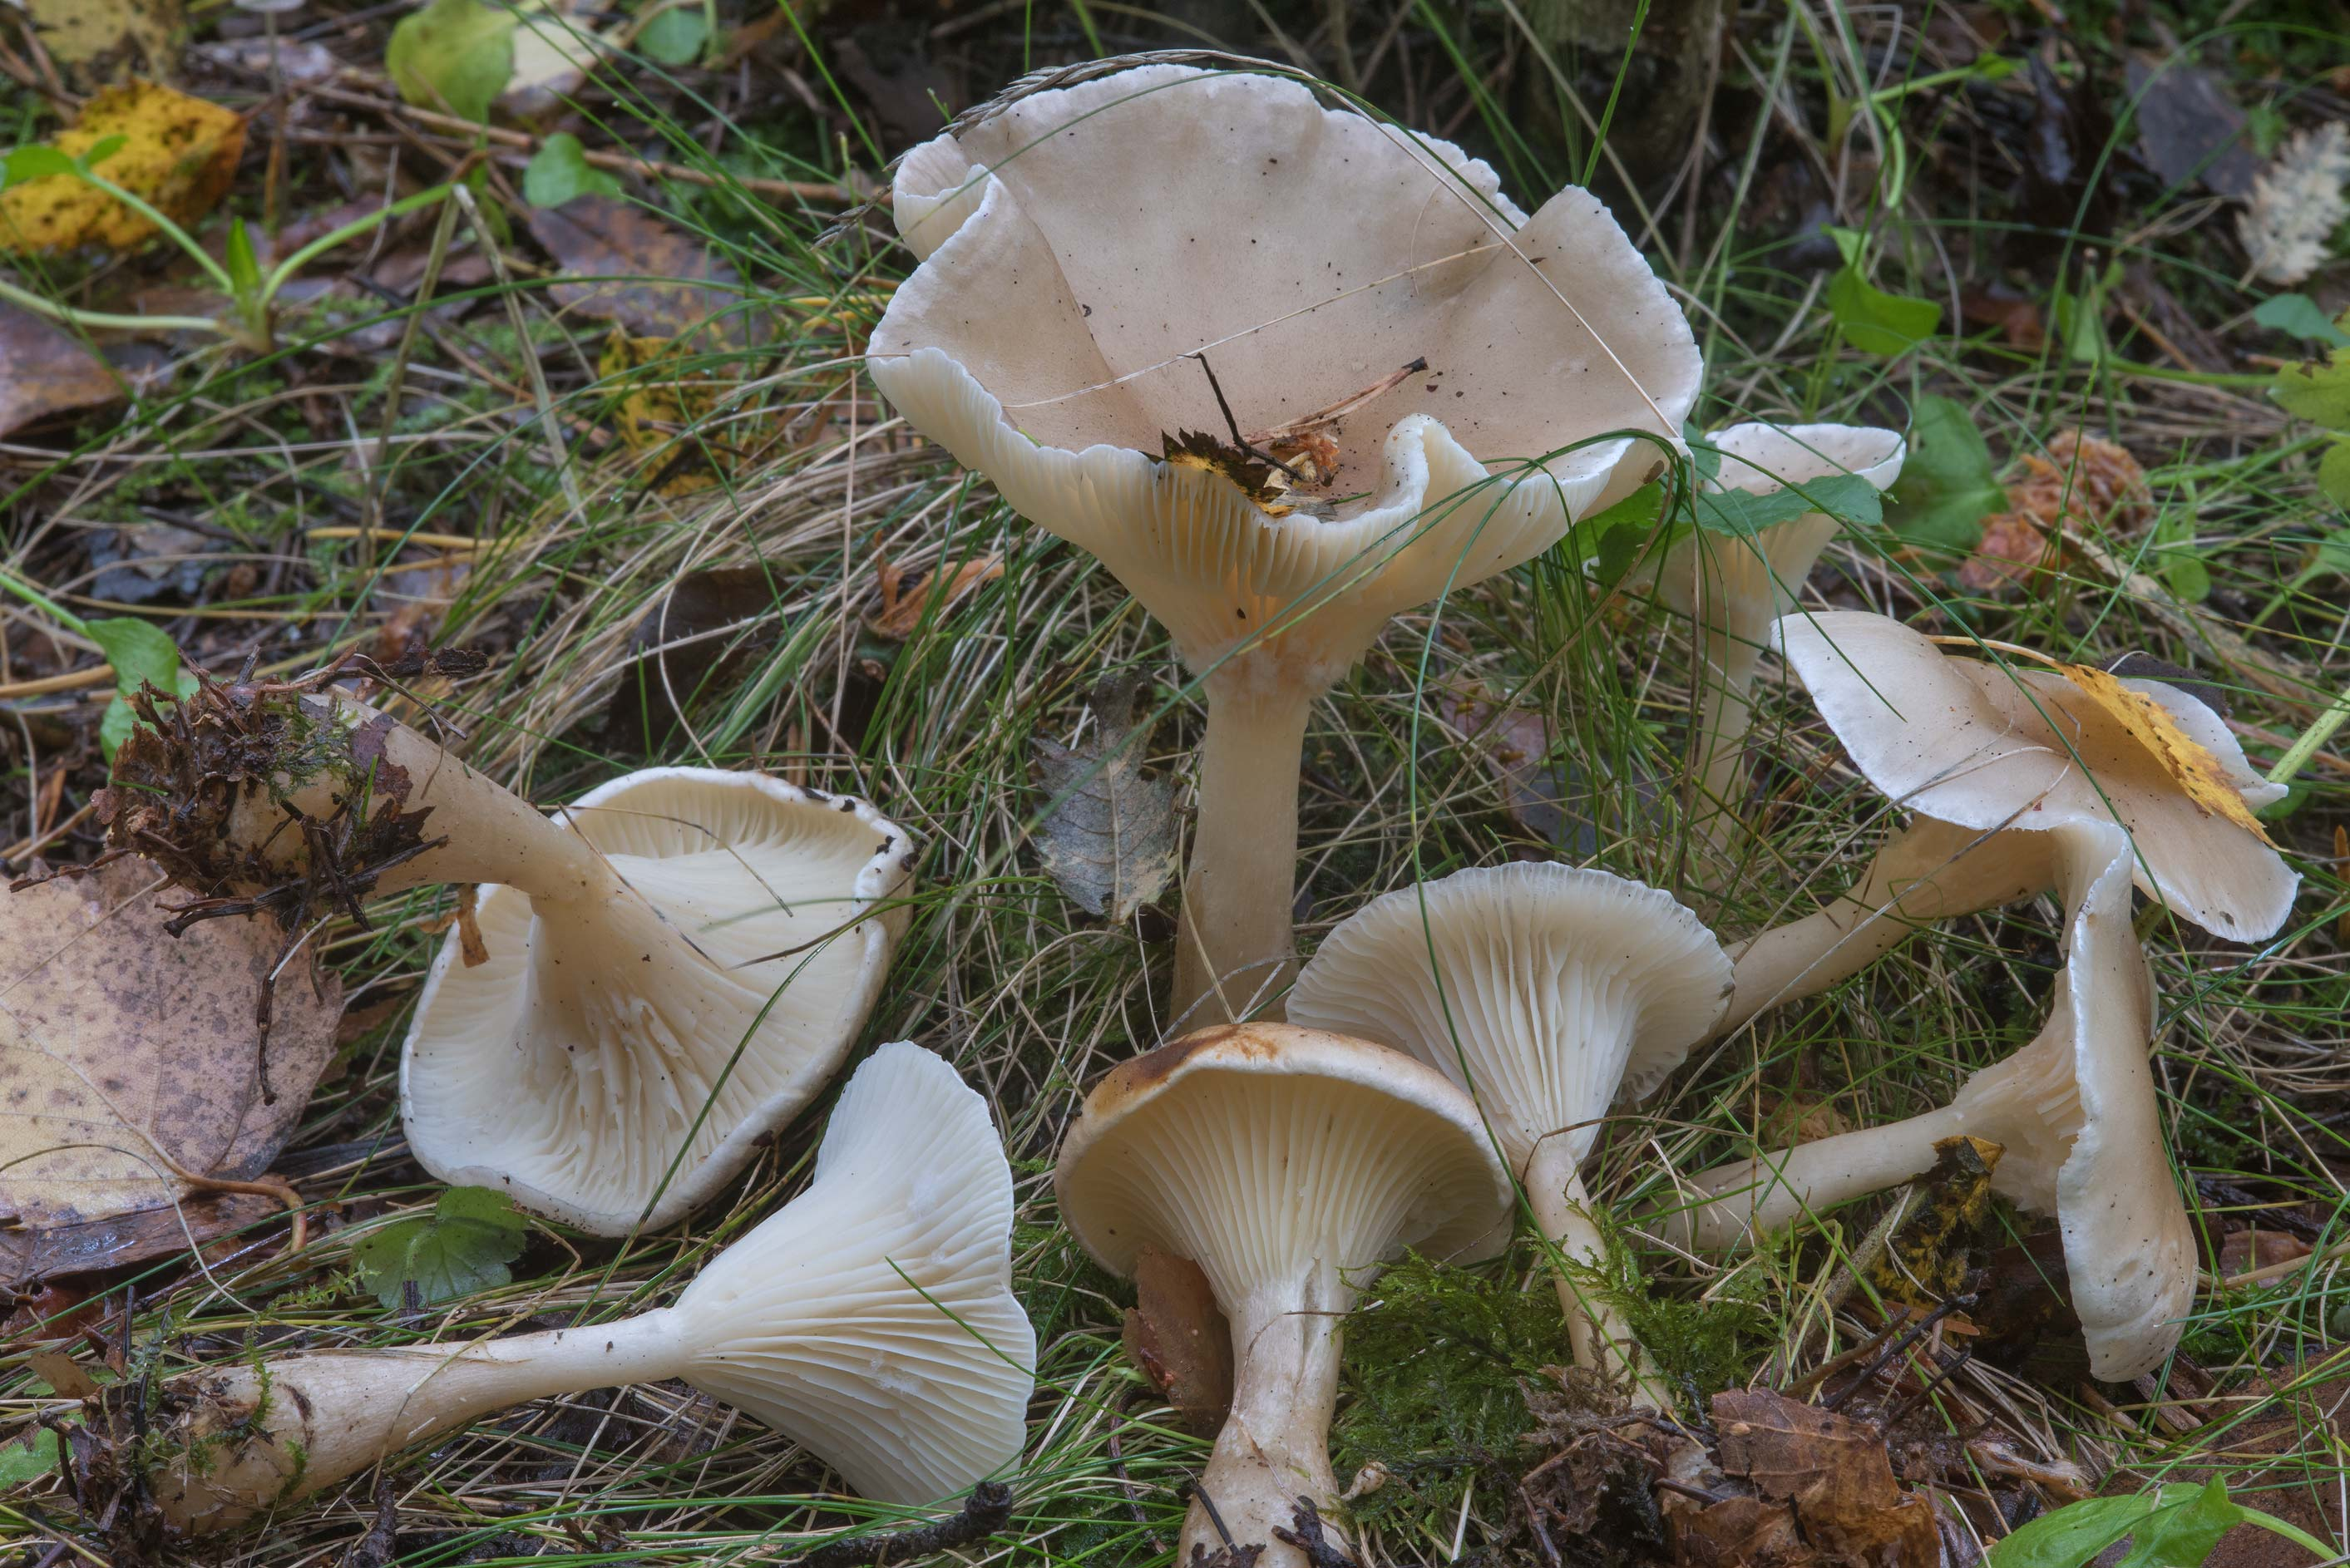 Club foot mushrooms (Ampulloclitocybe clavipes) in Sosnovka Park. St.Petersburg, Russia